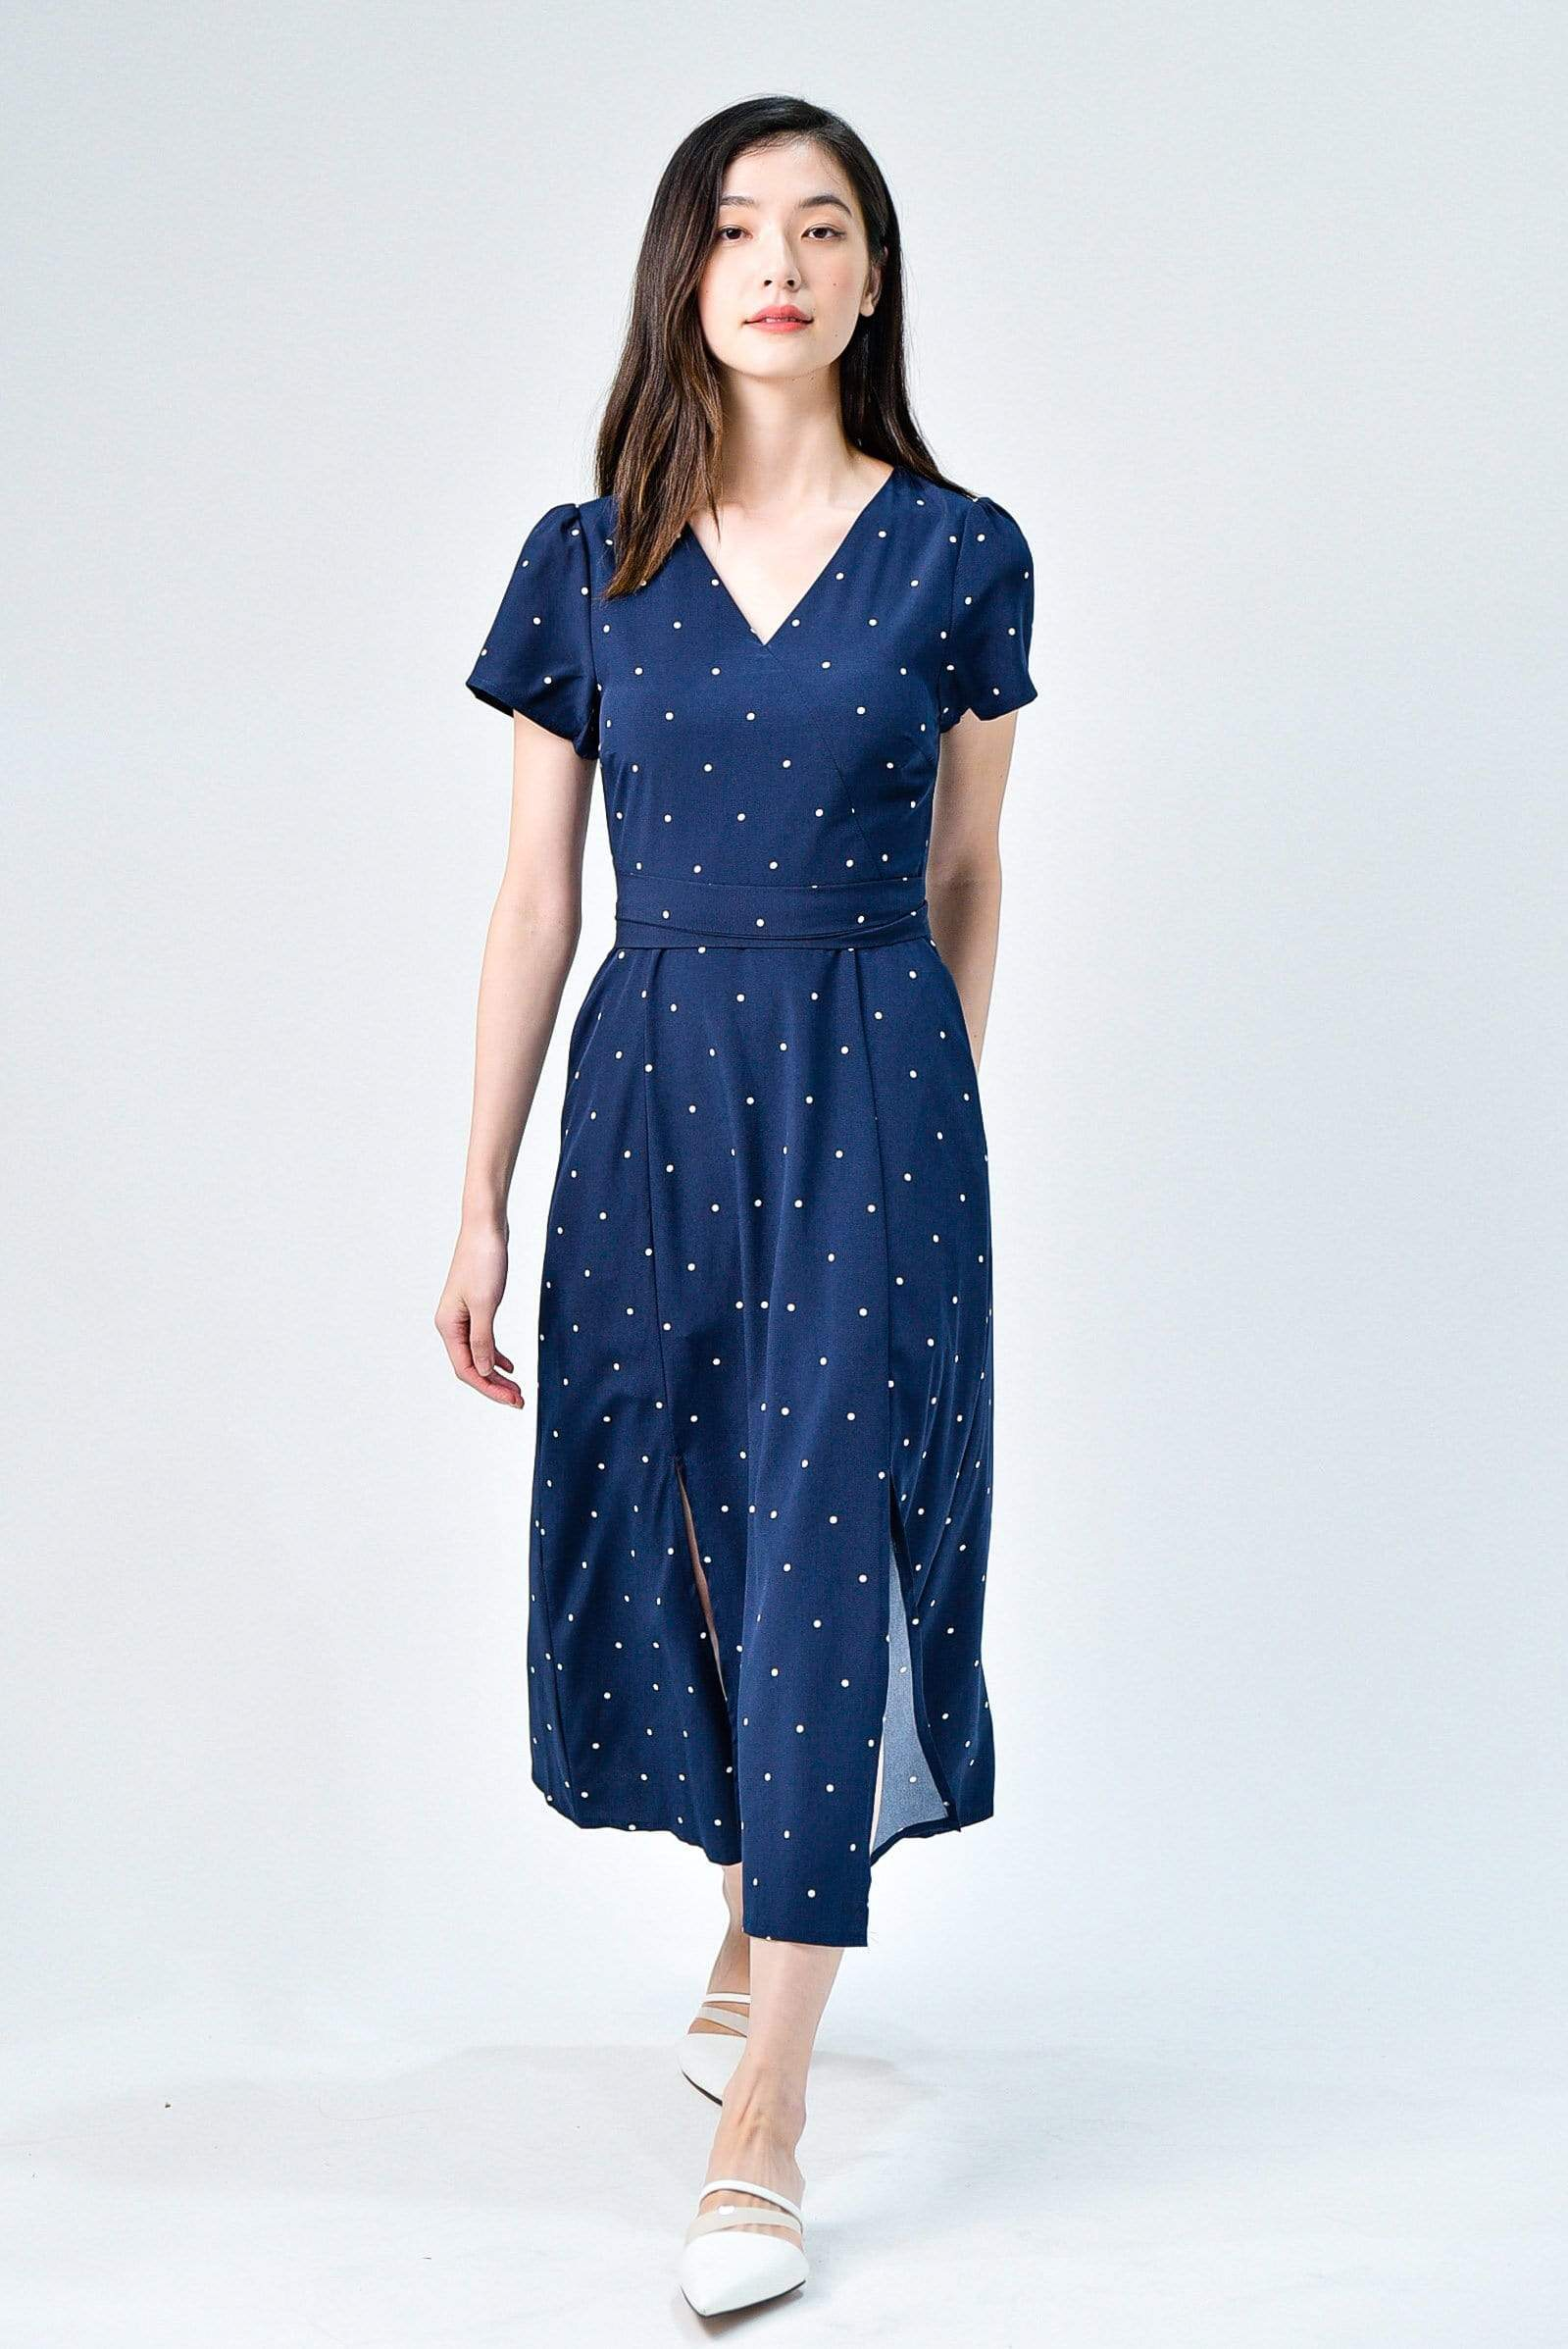 RUMI NAVY POLKA FRONT-SLITS SLEEVED DRESS